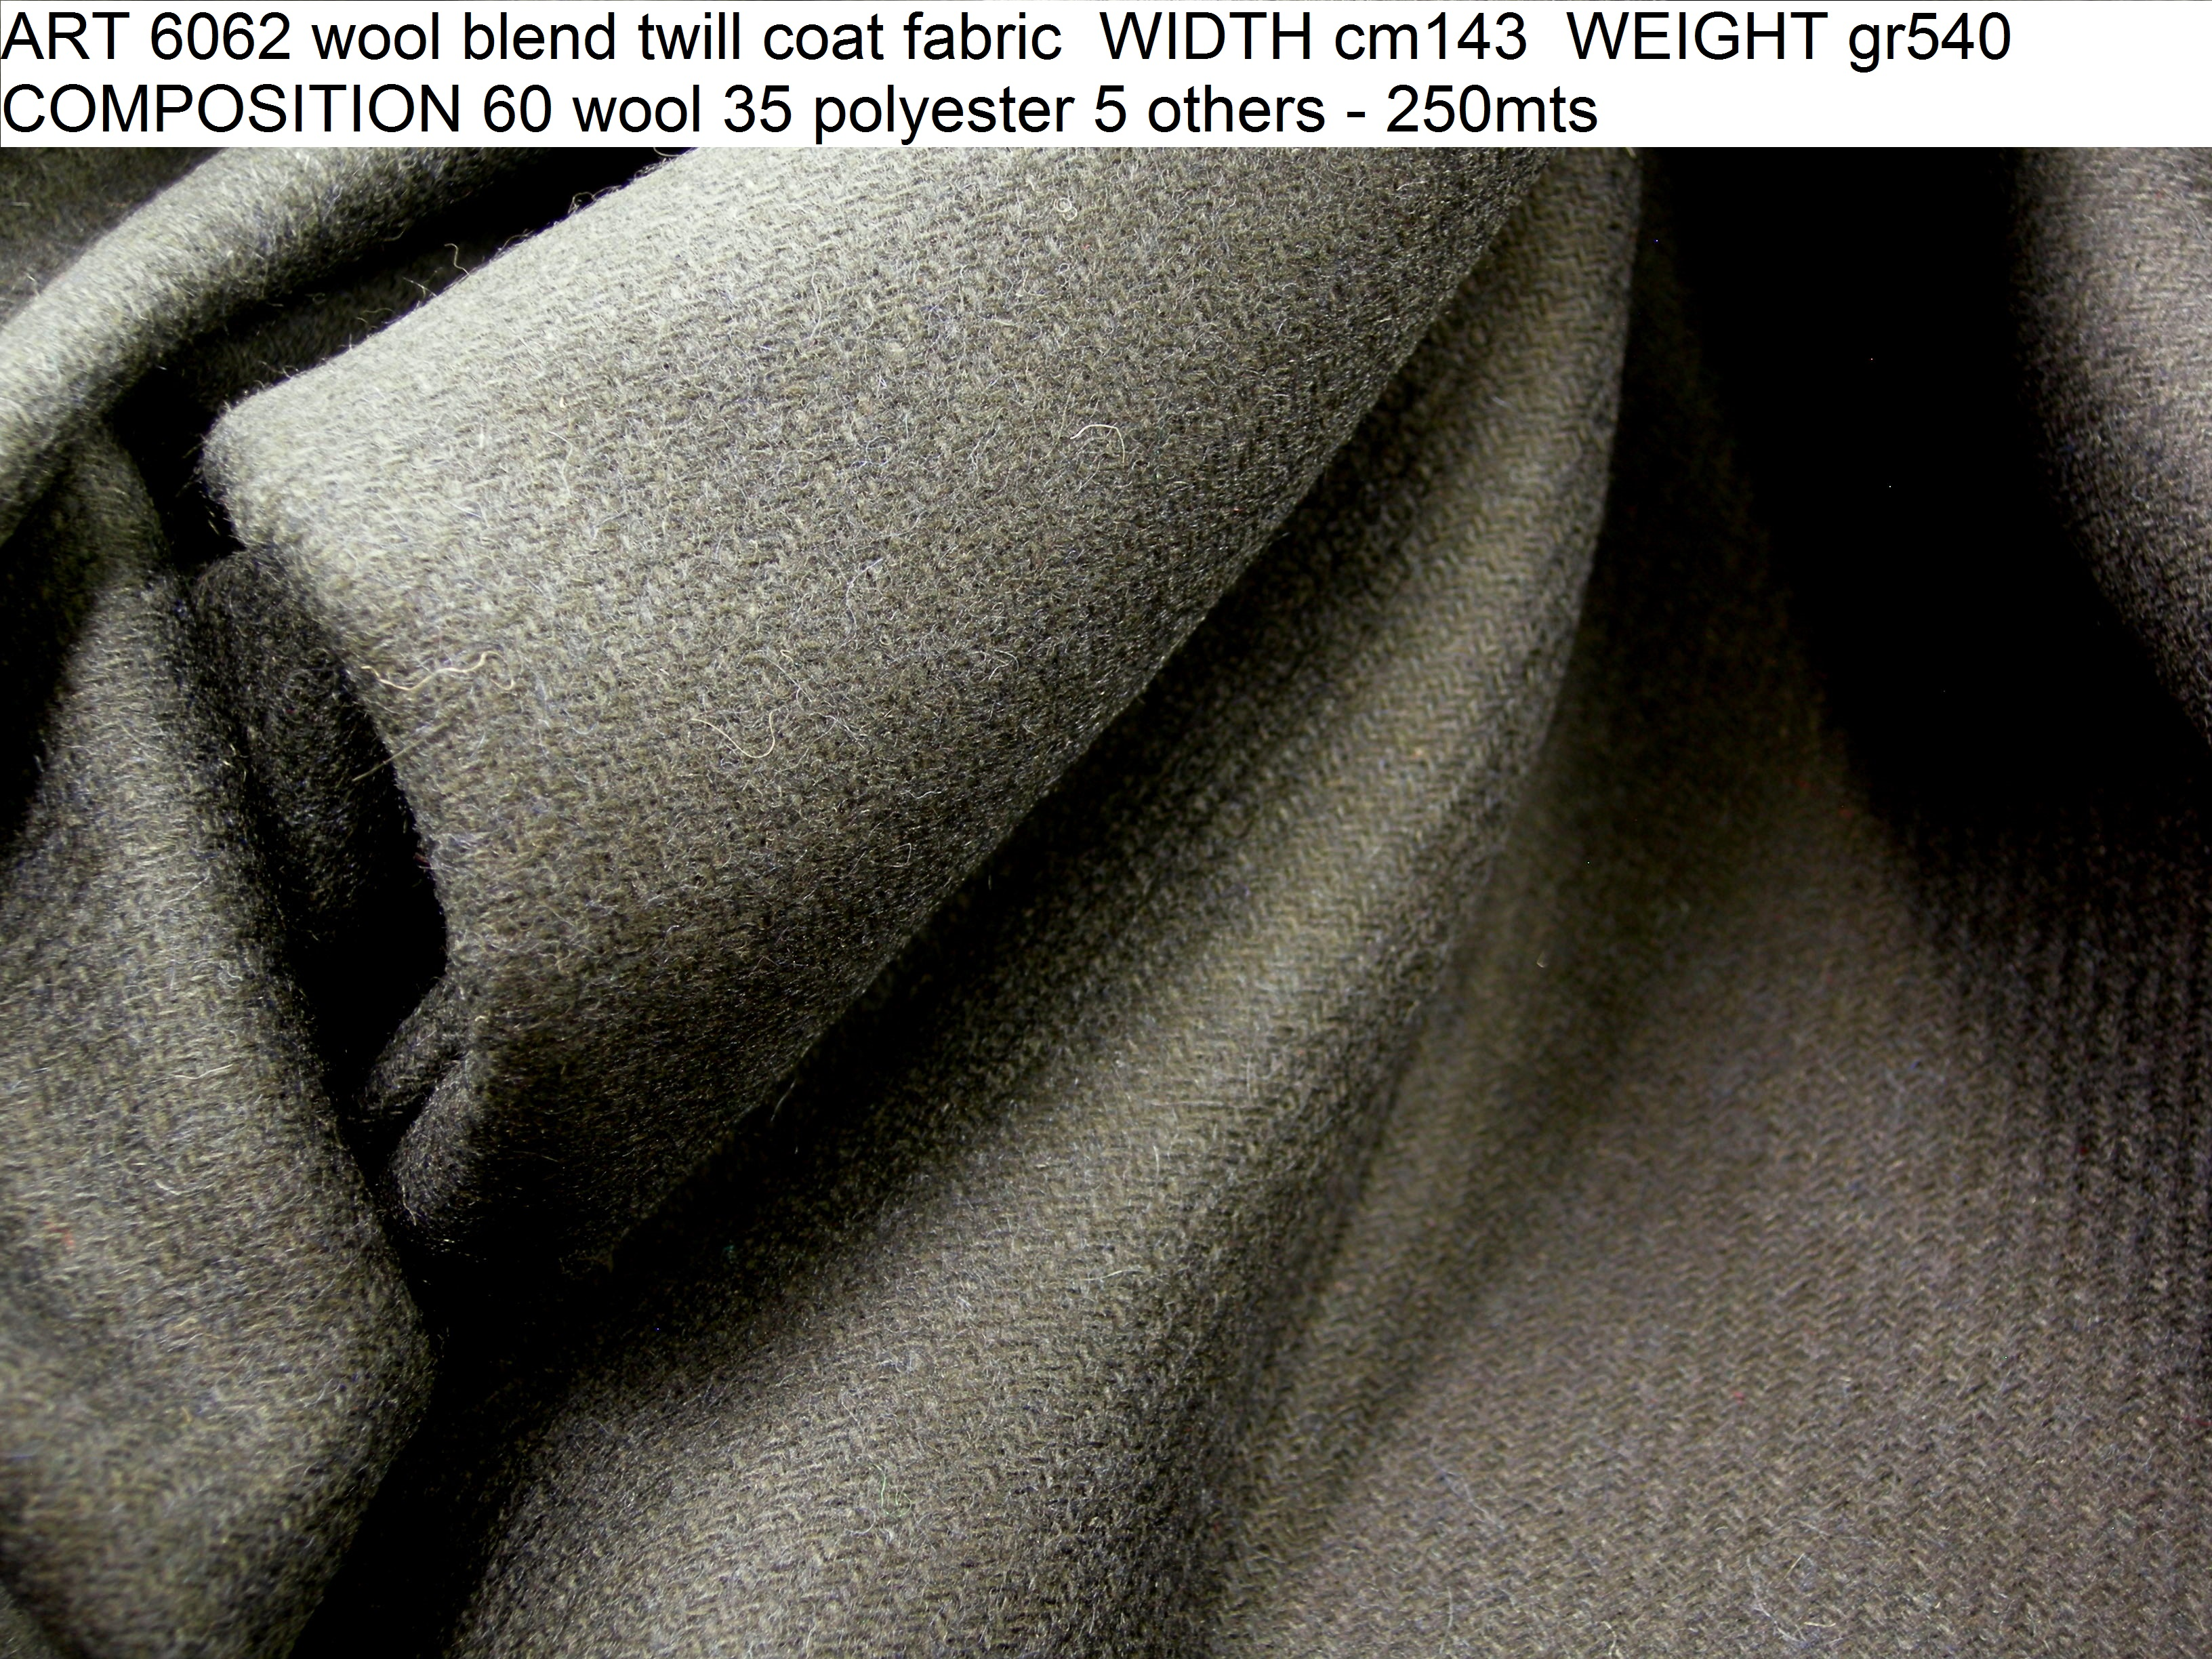 ART 6062 wool blend twill coat fabric WIDTH cm143 WEIGHT gr540 COMPOSITION 60 wool 35 polyester 5 others - 250mts